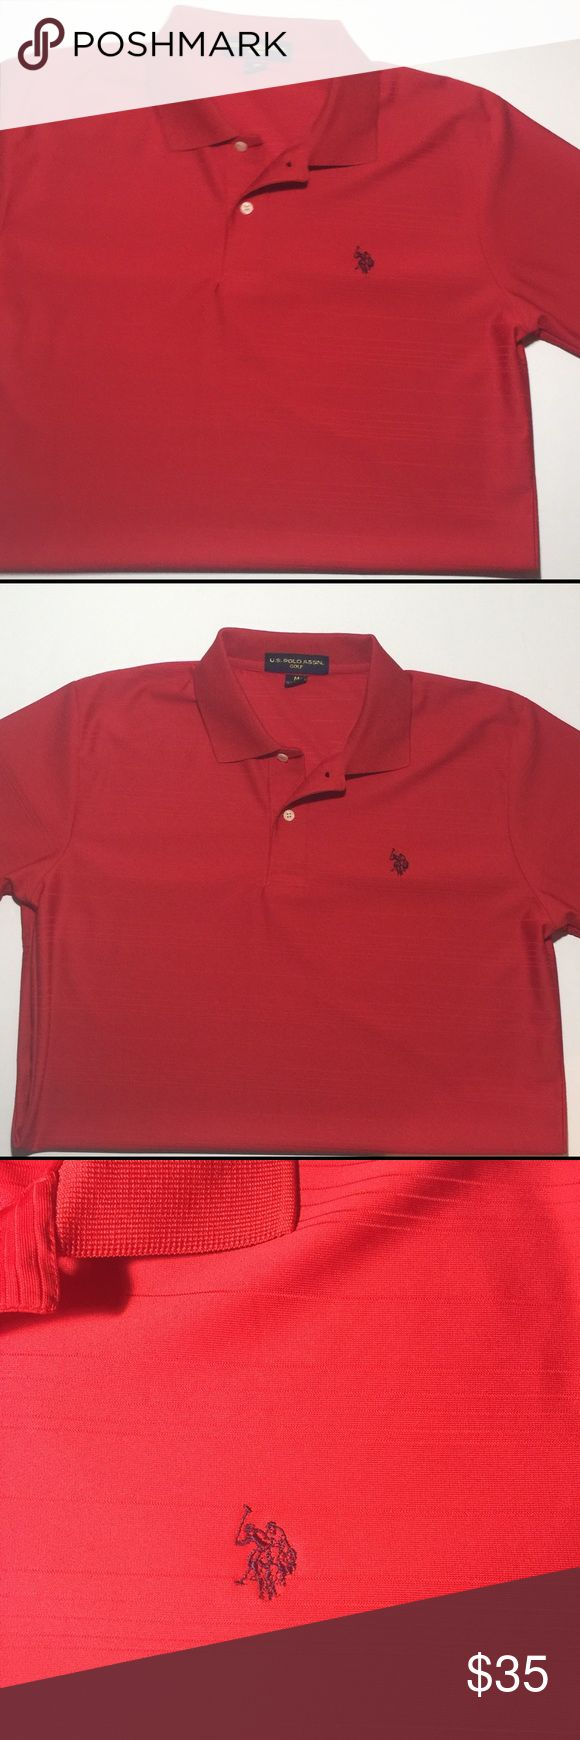 US Polo Assn. Red Men's Short Sleeve Golf Shirt This iconic relaxed-fitting polo shirt is crafted from durable, breathable cotton mesh and finished with US Polo's signature pony embroidery. * Ribbed polo collar * Applied two-button placket * Short sleeves with ribbed armbands * Uneven vented hem keeps shirt in place when tucked and ensures greater range of motion * Cotton * Machine wash * Imported U.S. Polo Assn. Shirts Polos